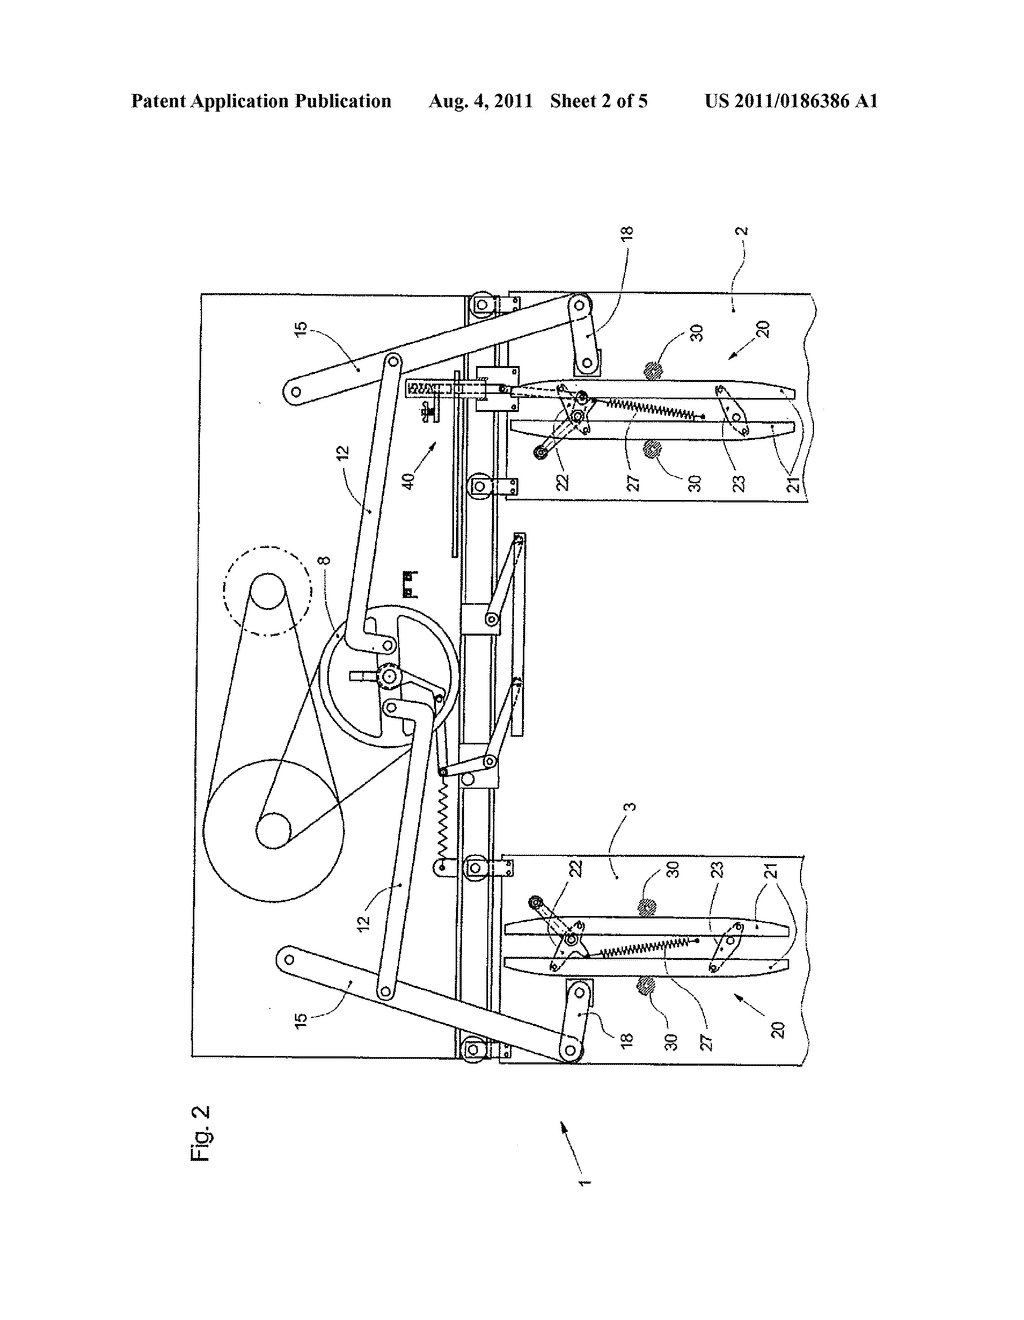 hight resolution of elevator door system comprising a car door locking mechanism diagram schematic and image 03